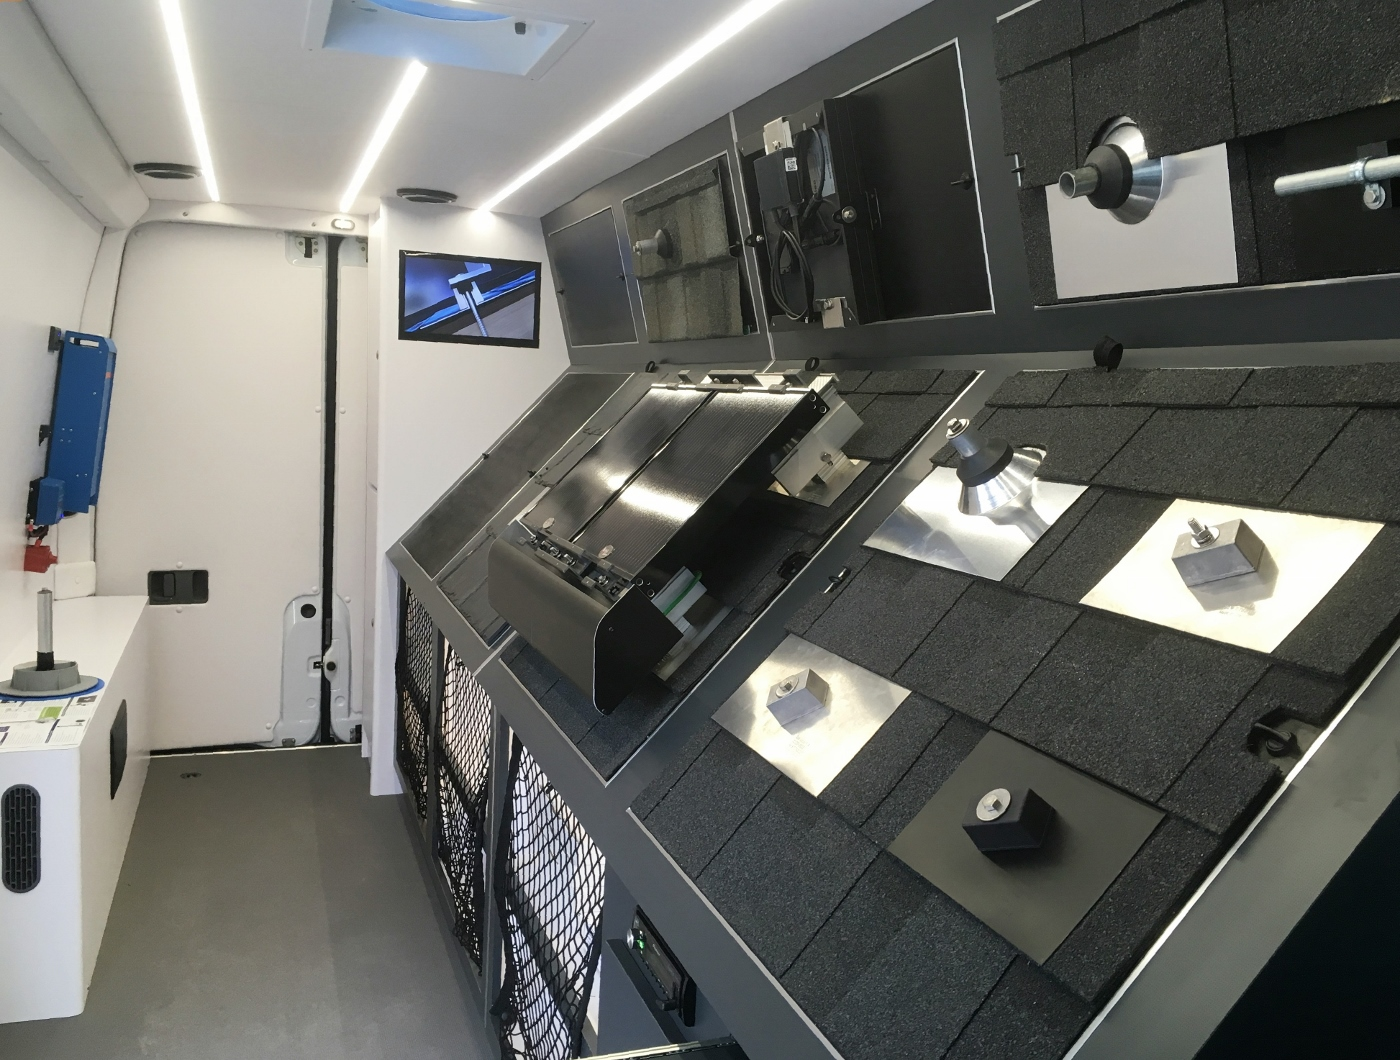 Product Display Amp Mobile Training Center